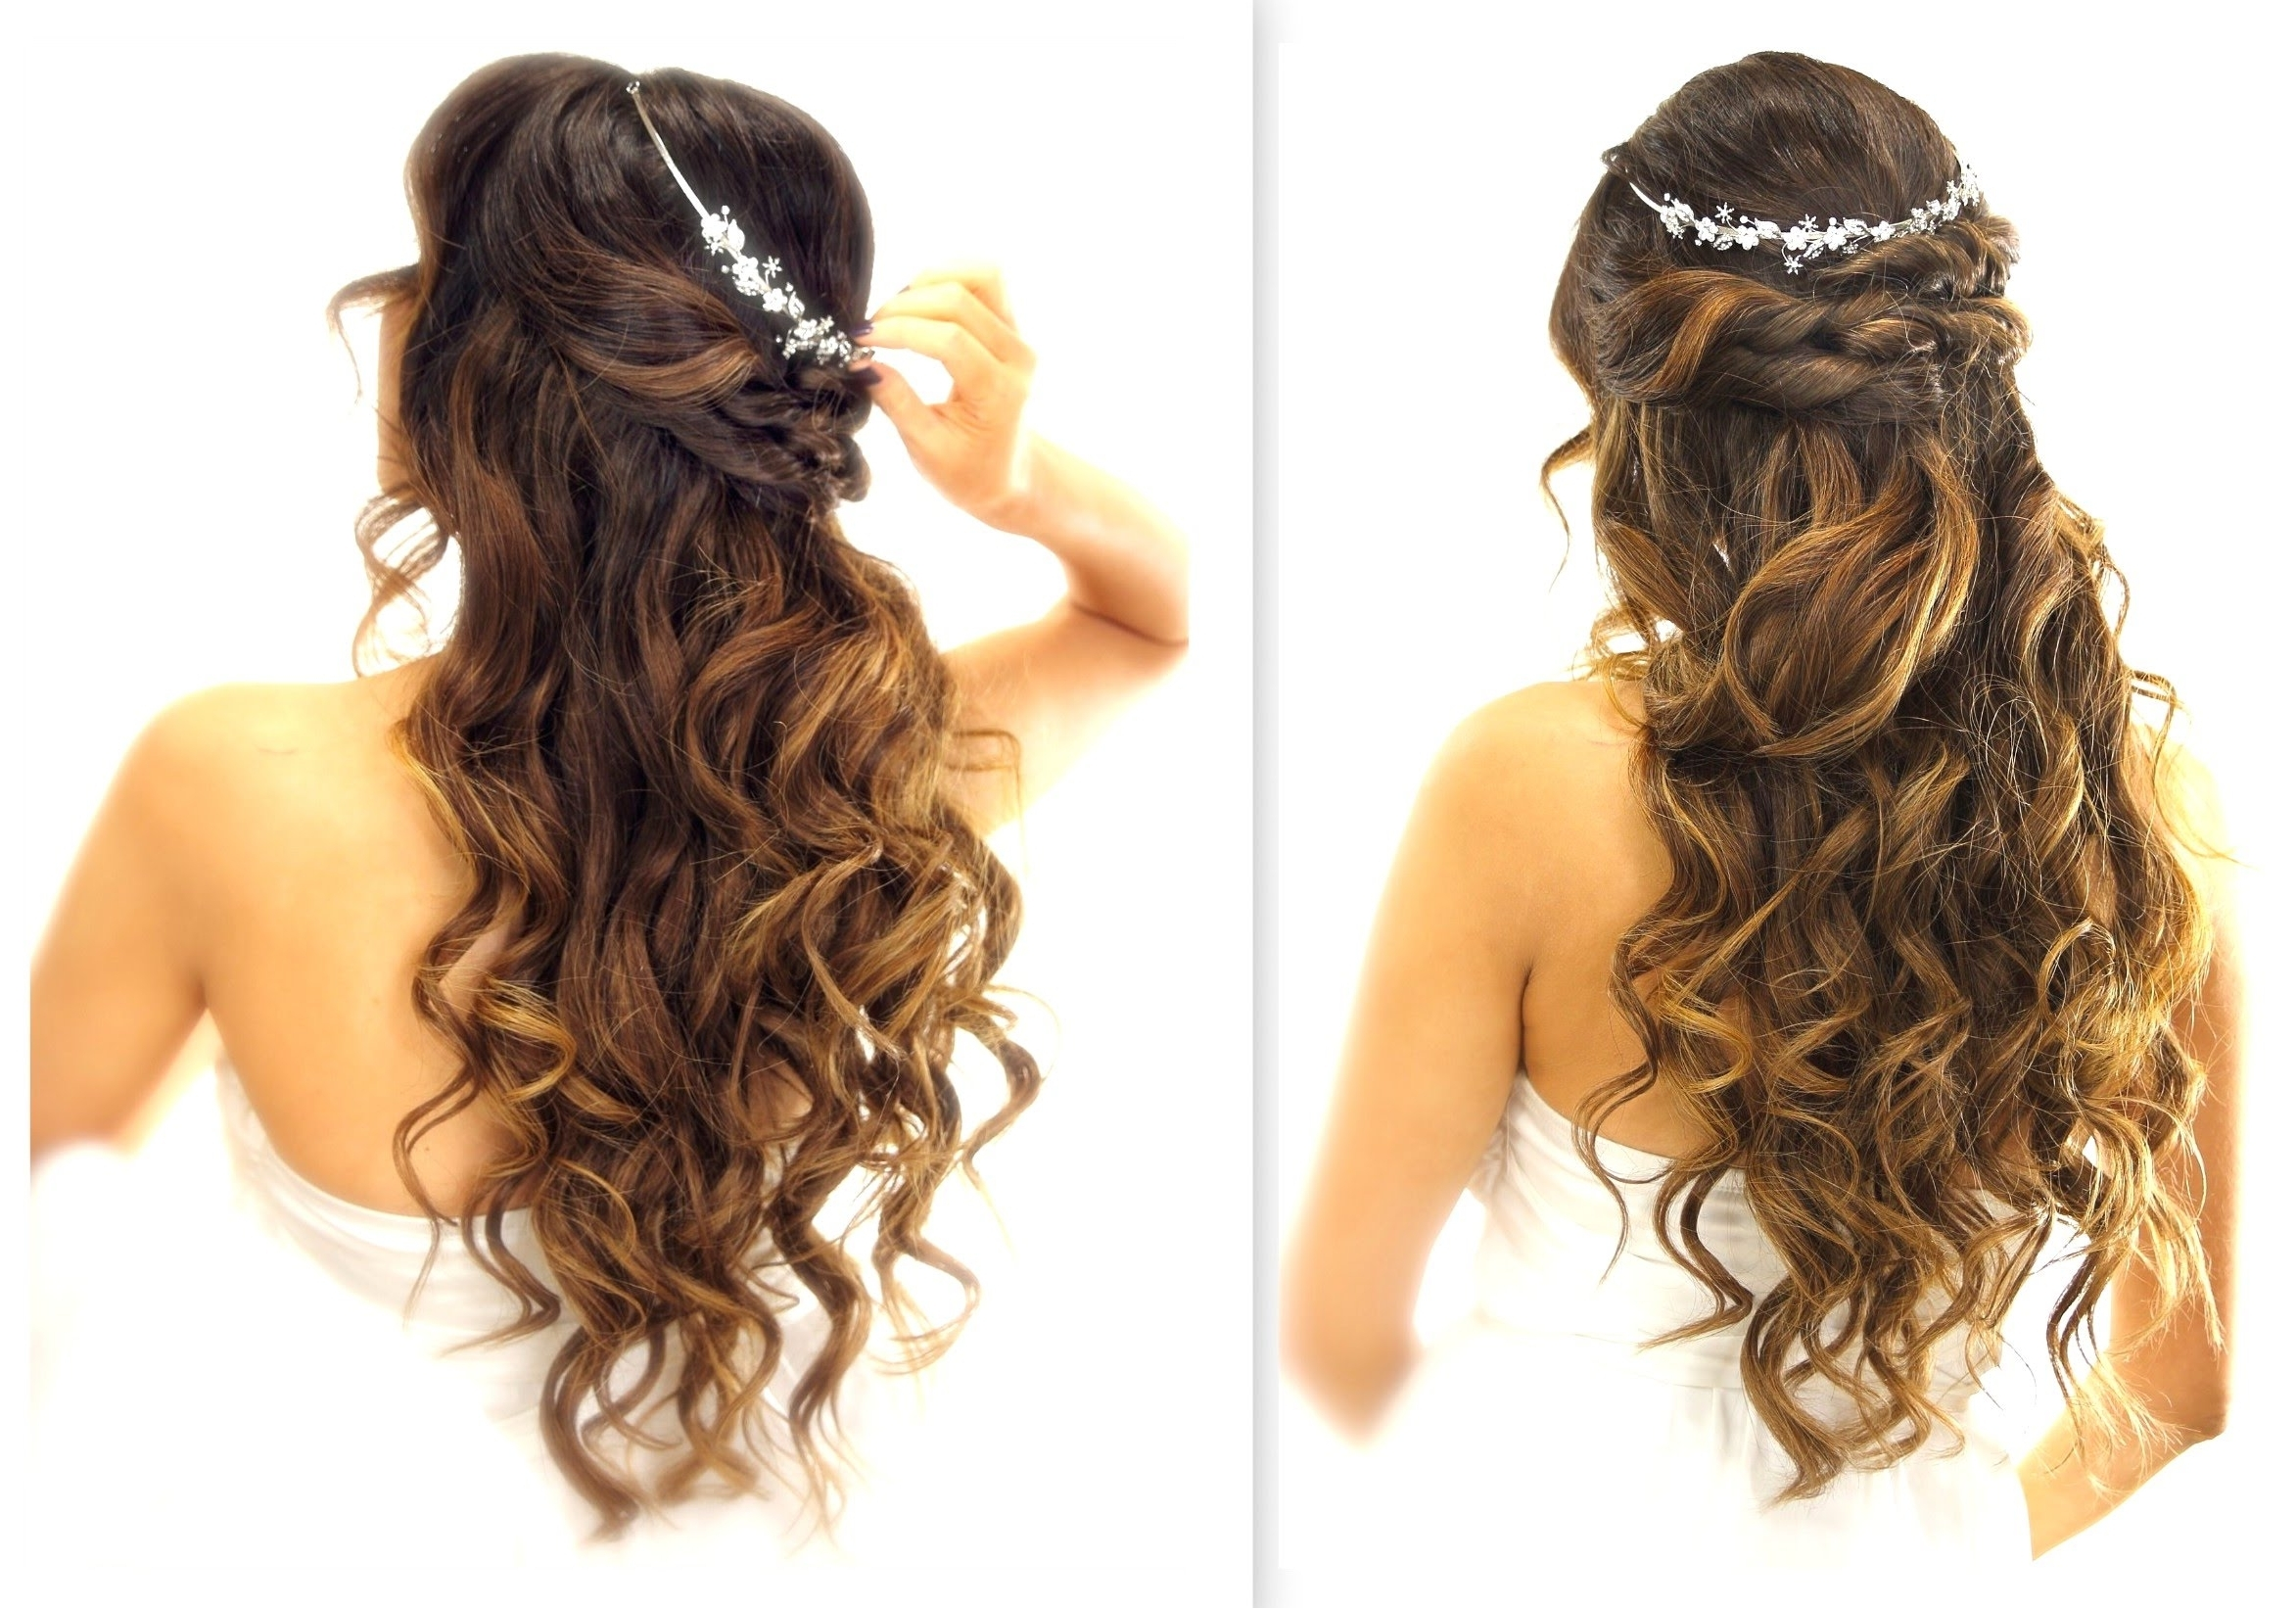 Bridal Hairstyles (View 9 of 15)